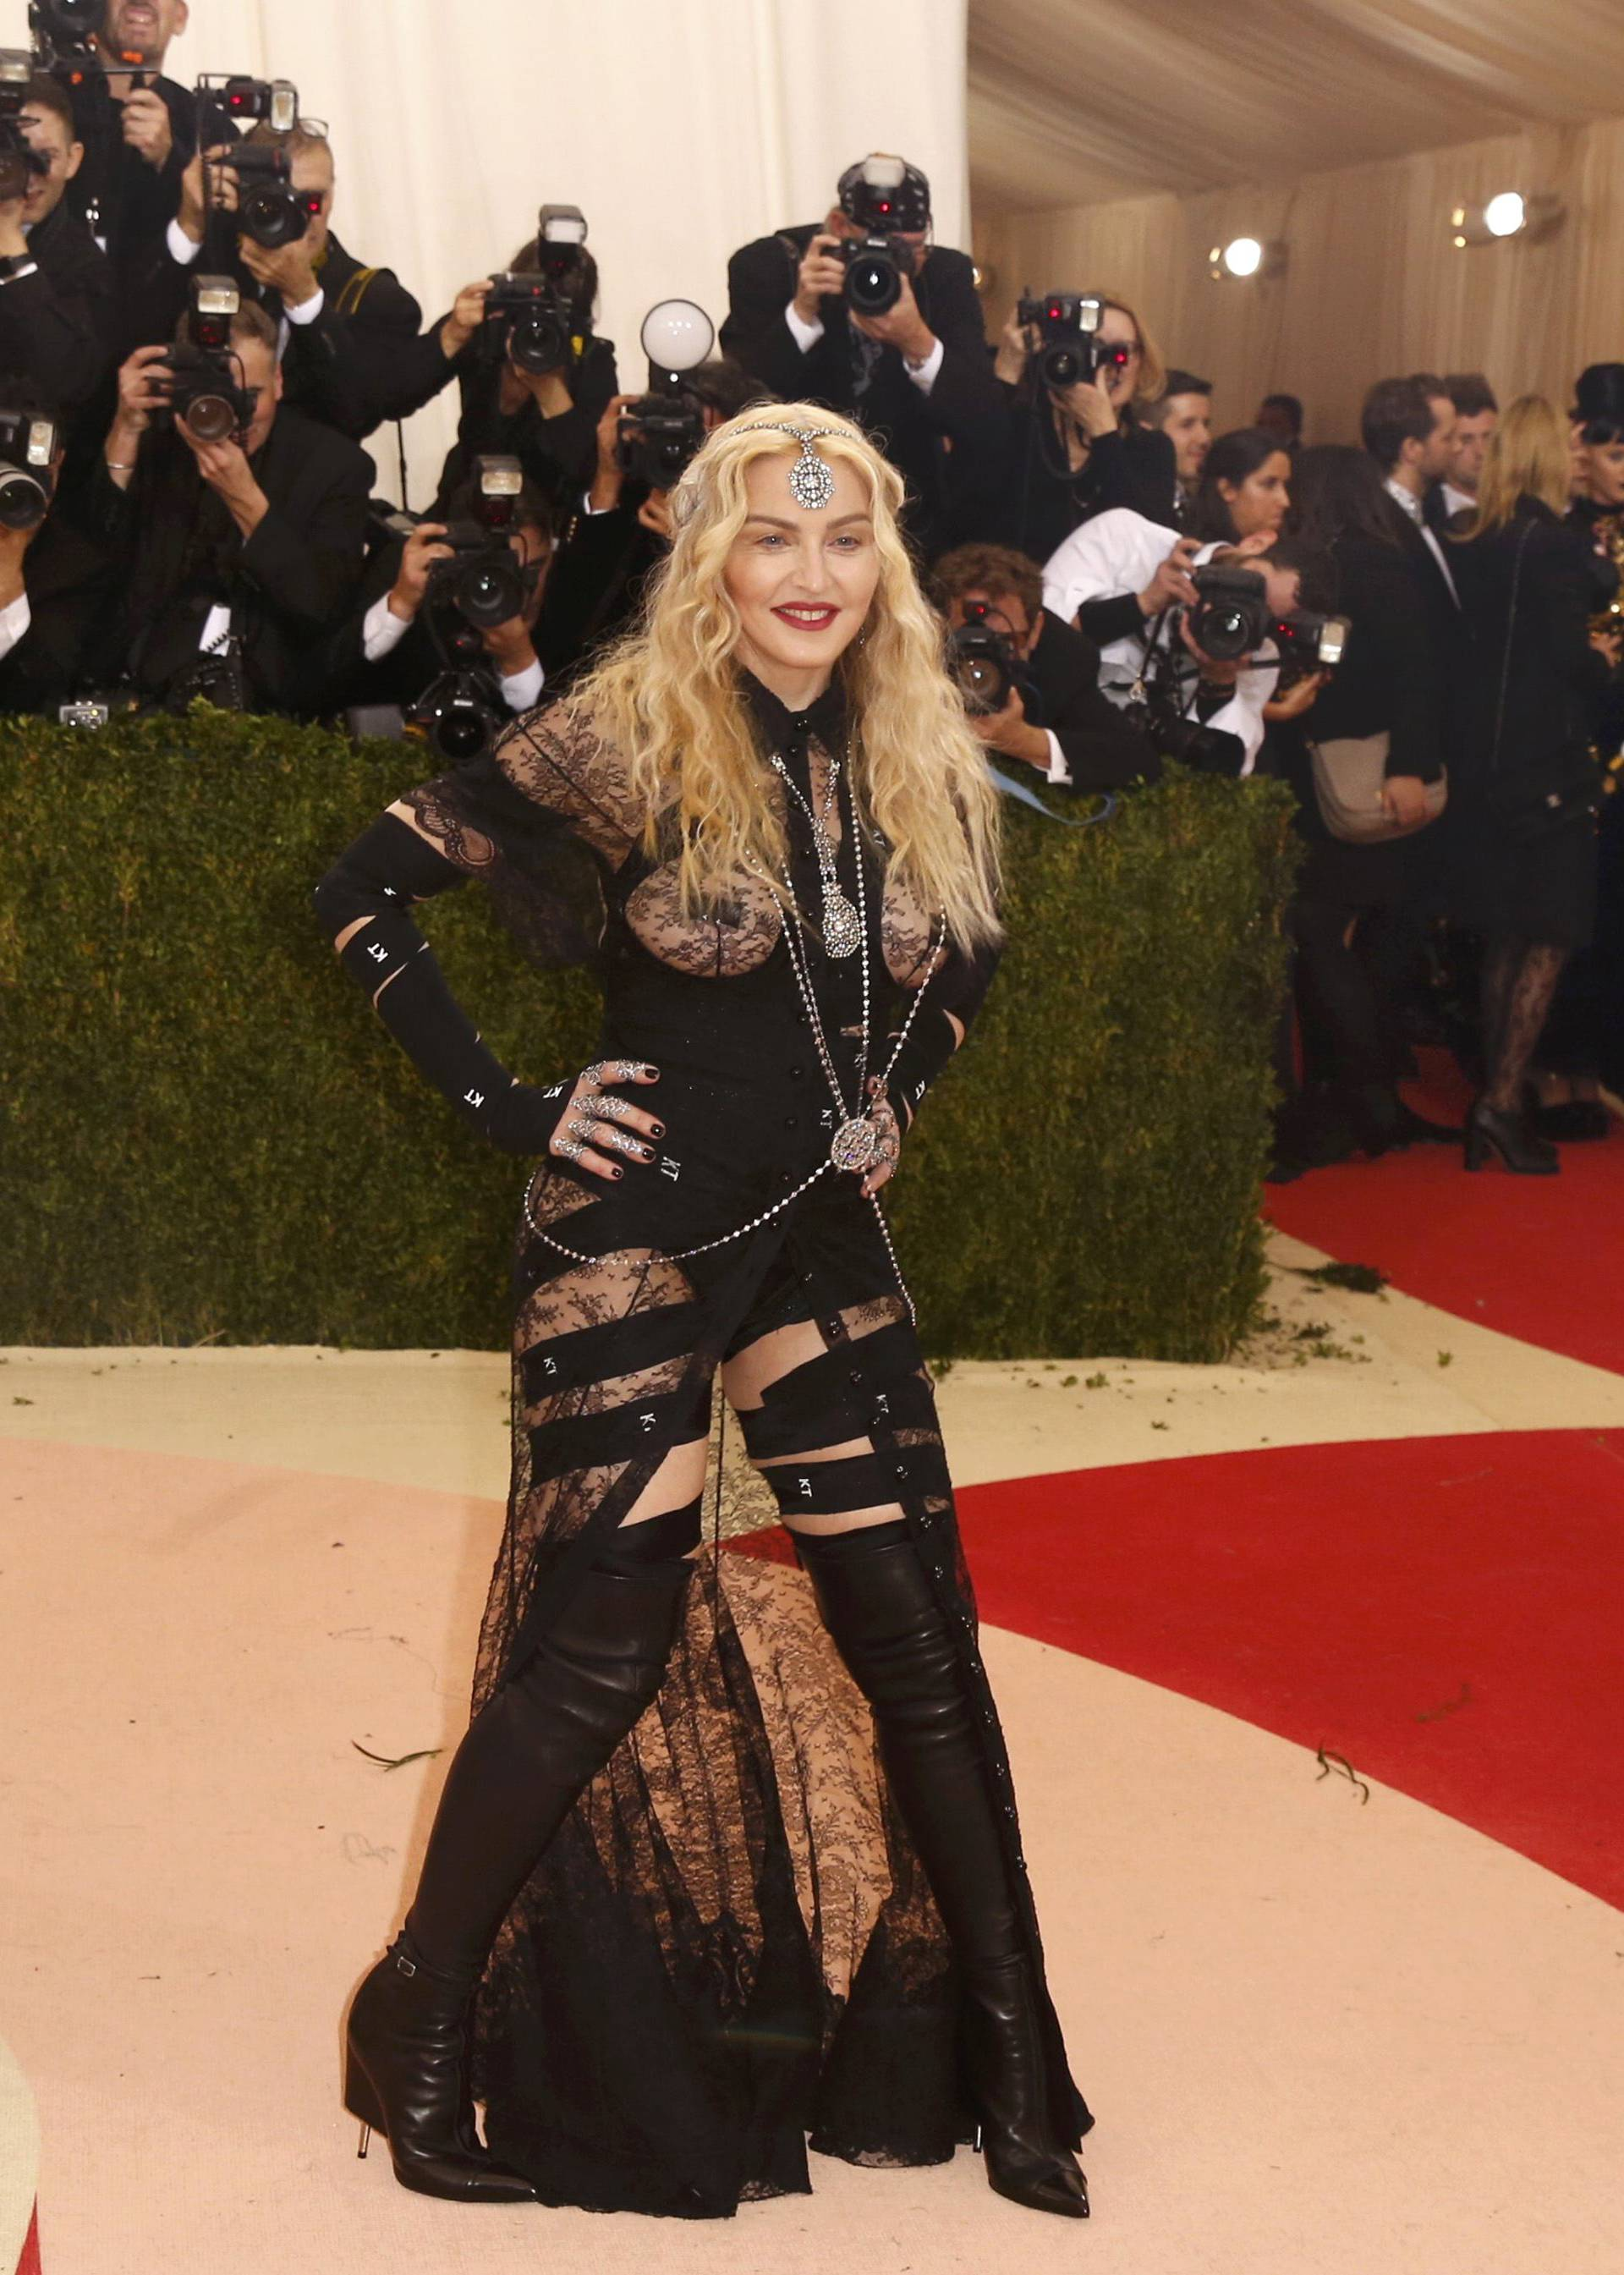 Singer Madonna arrives with designer Tisci at the Met Gala in New York